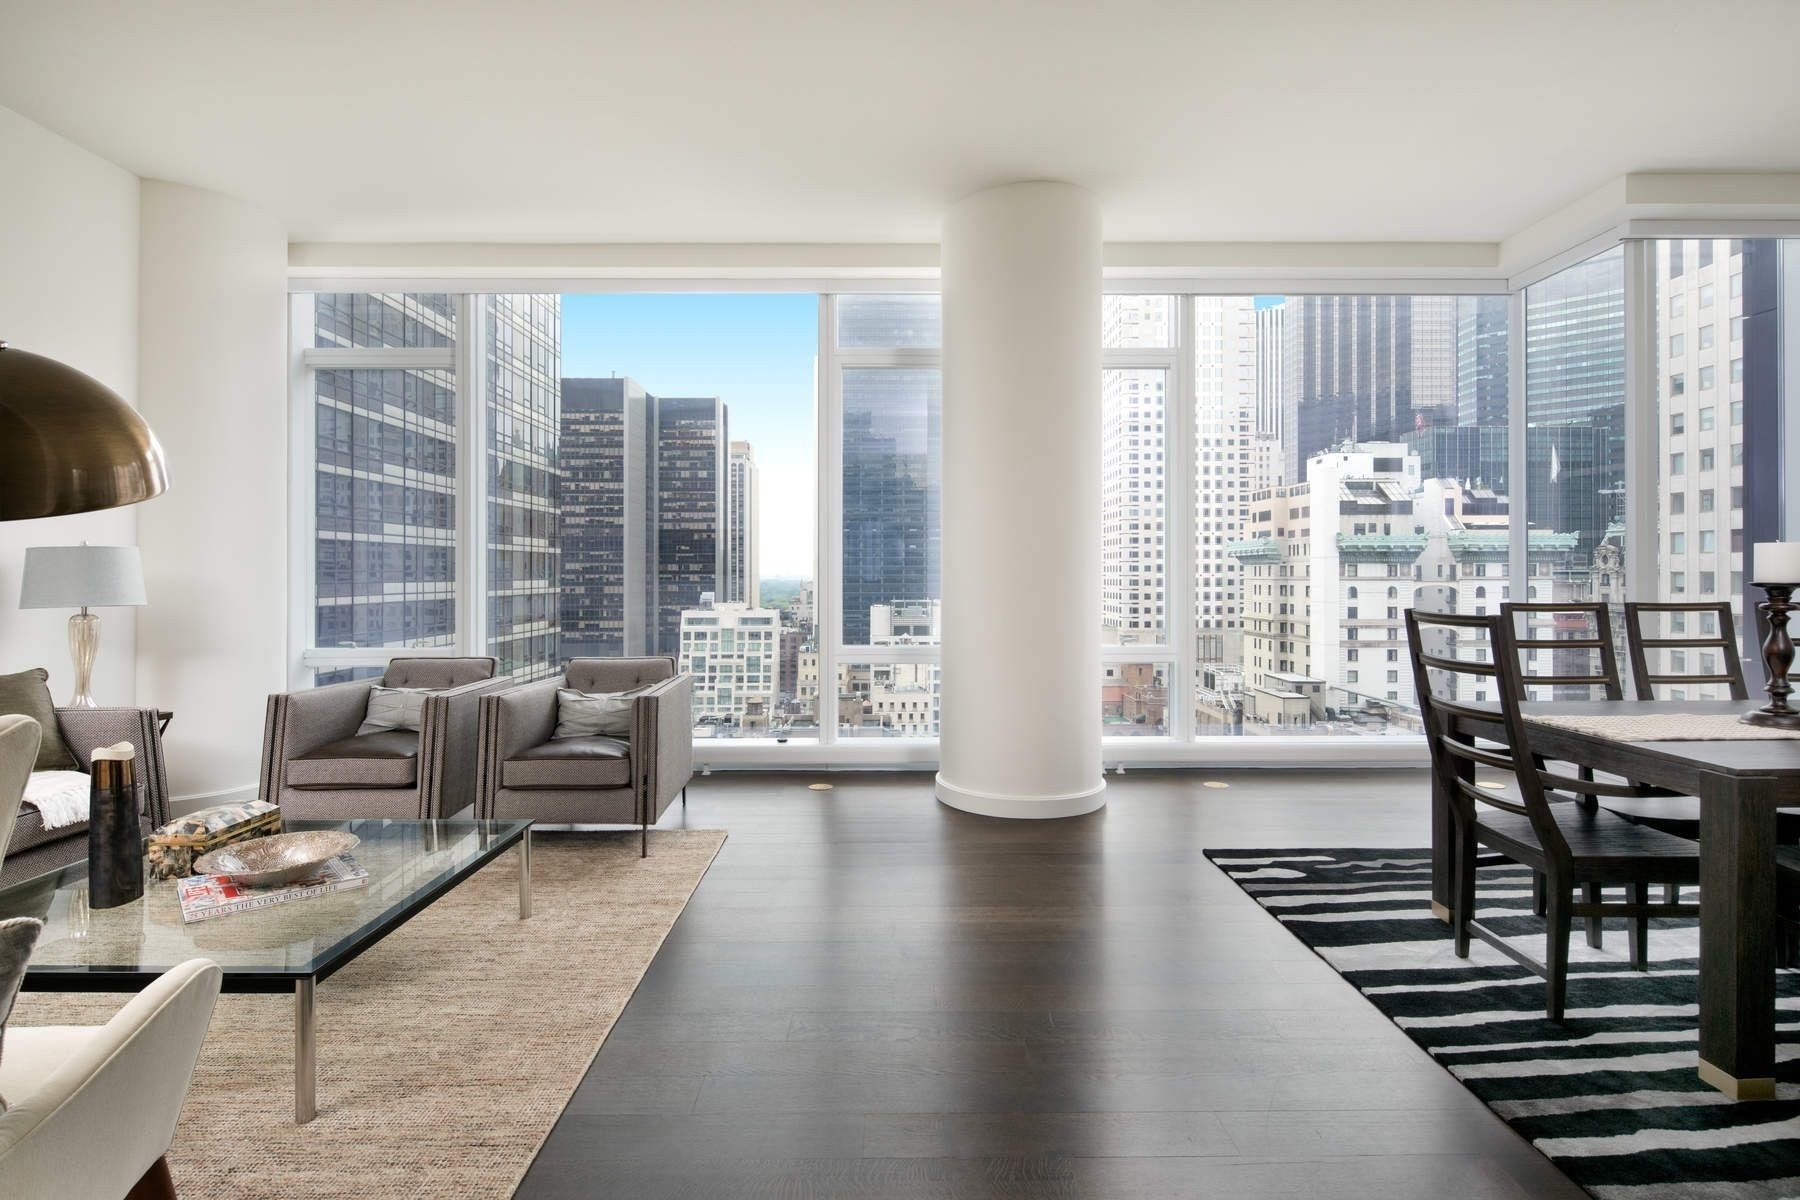 Property at BACCARAT HOTEL & RESIDENCES, 20 West 53rd St, 22A Midtown West, New York, NY 10019